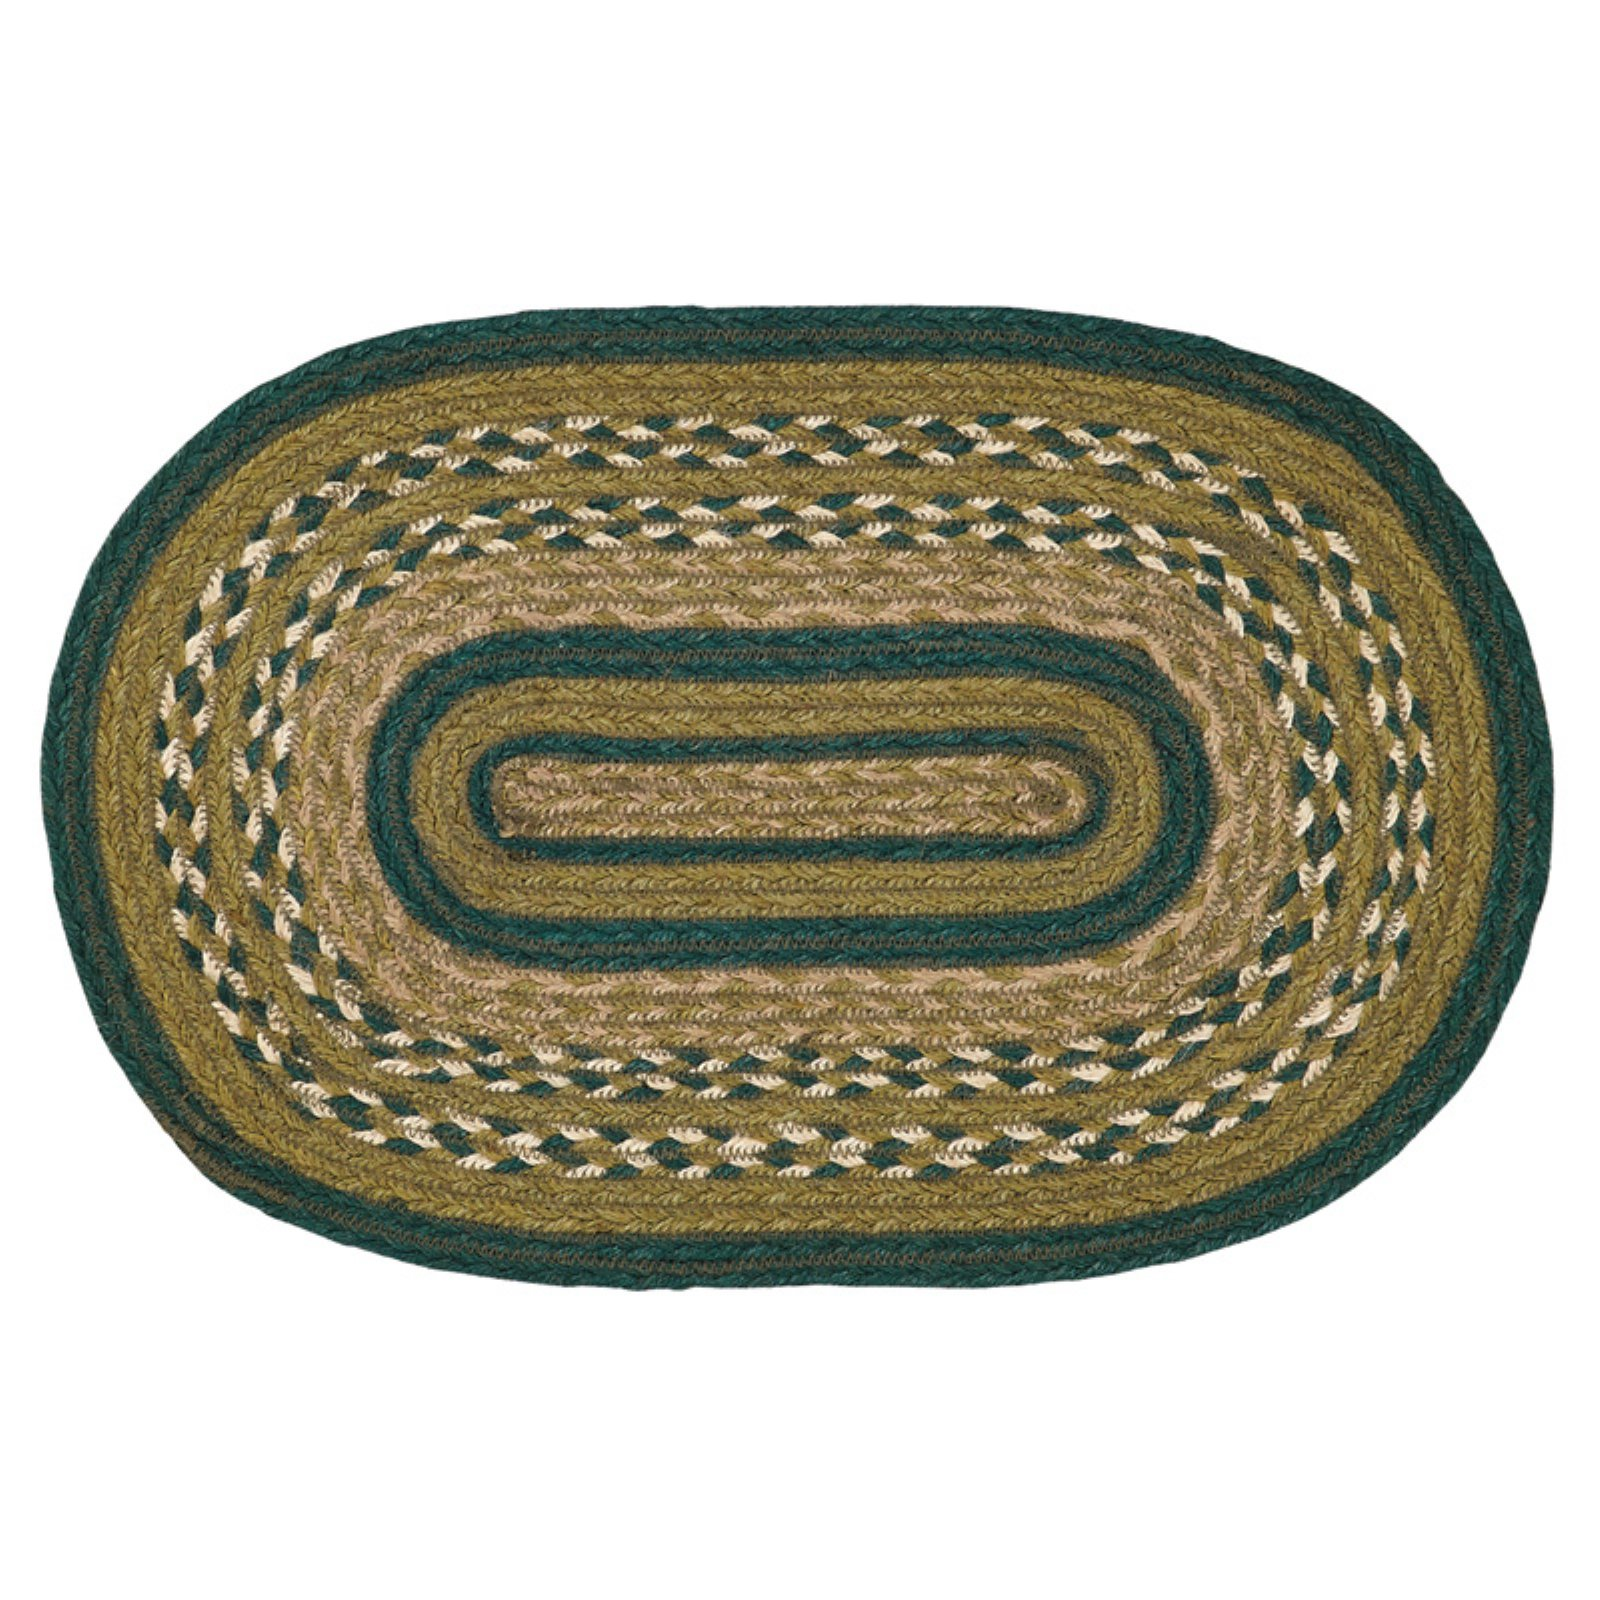 VHC Rustic & Lodge Tabletop & Kitchen Sherwood Jute Placemat Set of 6 by VHC Brands